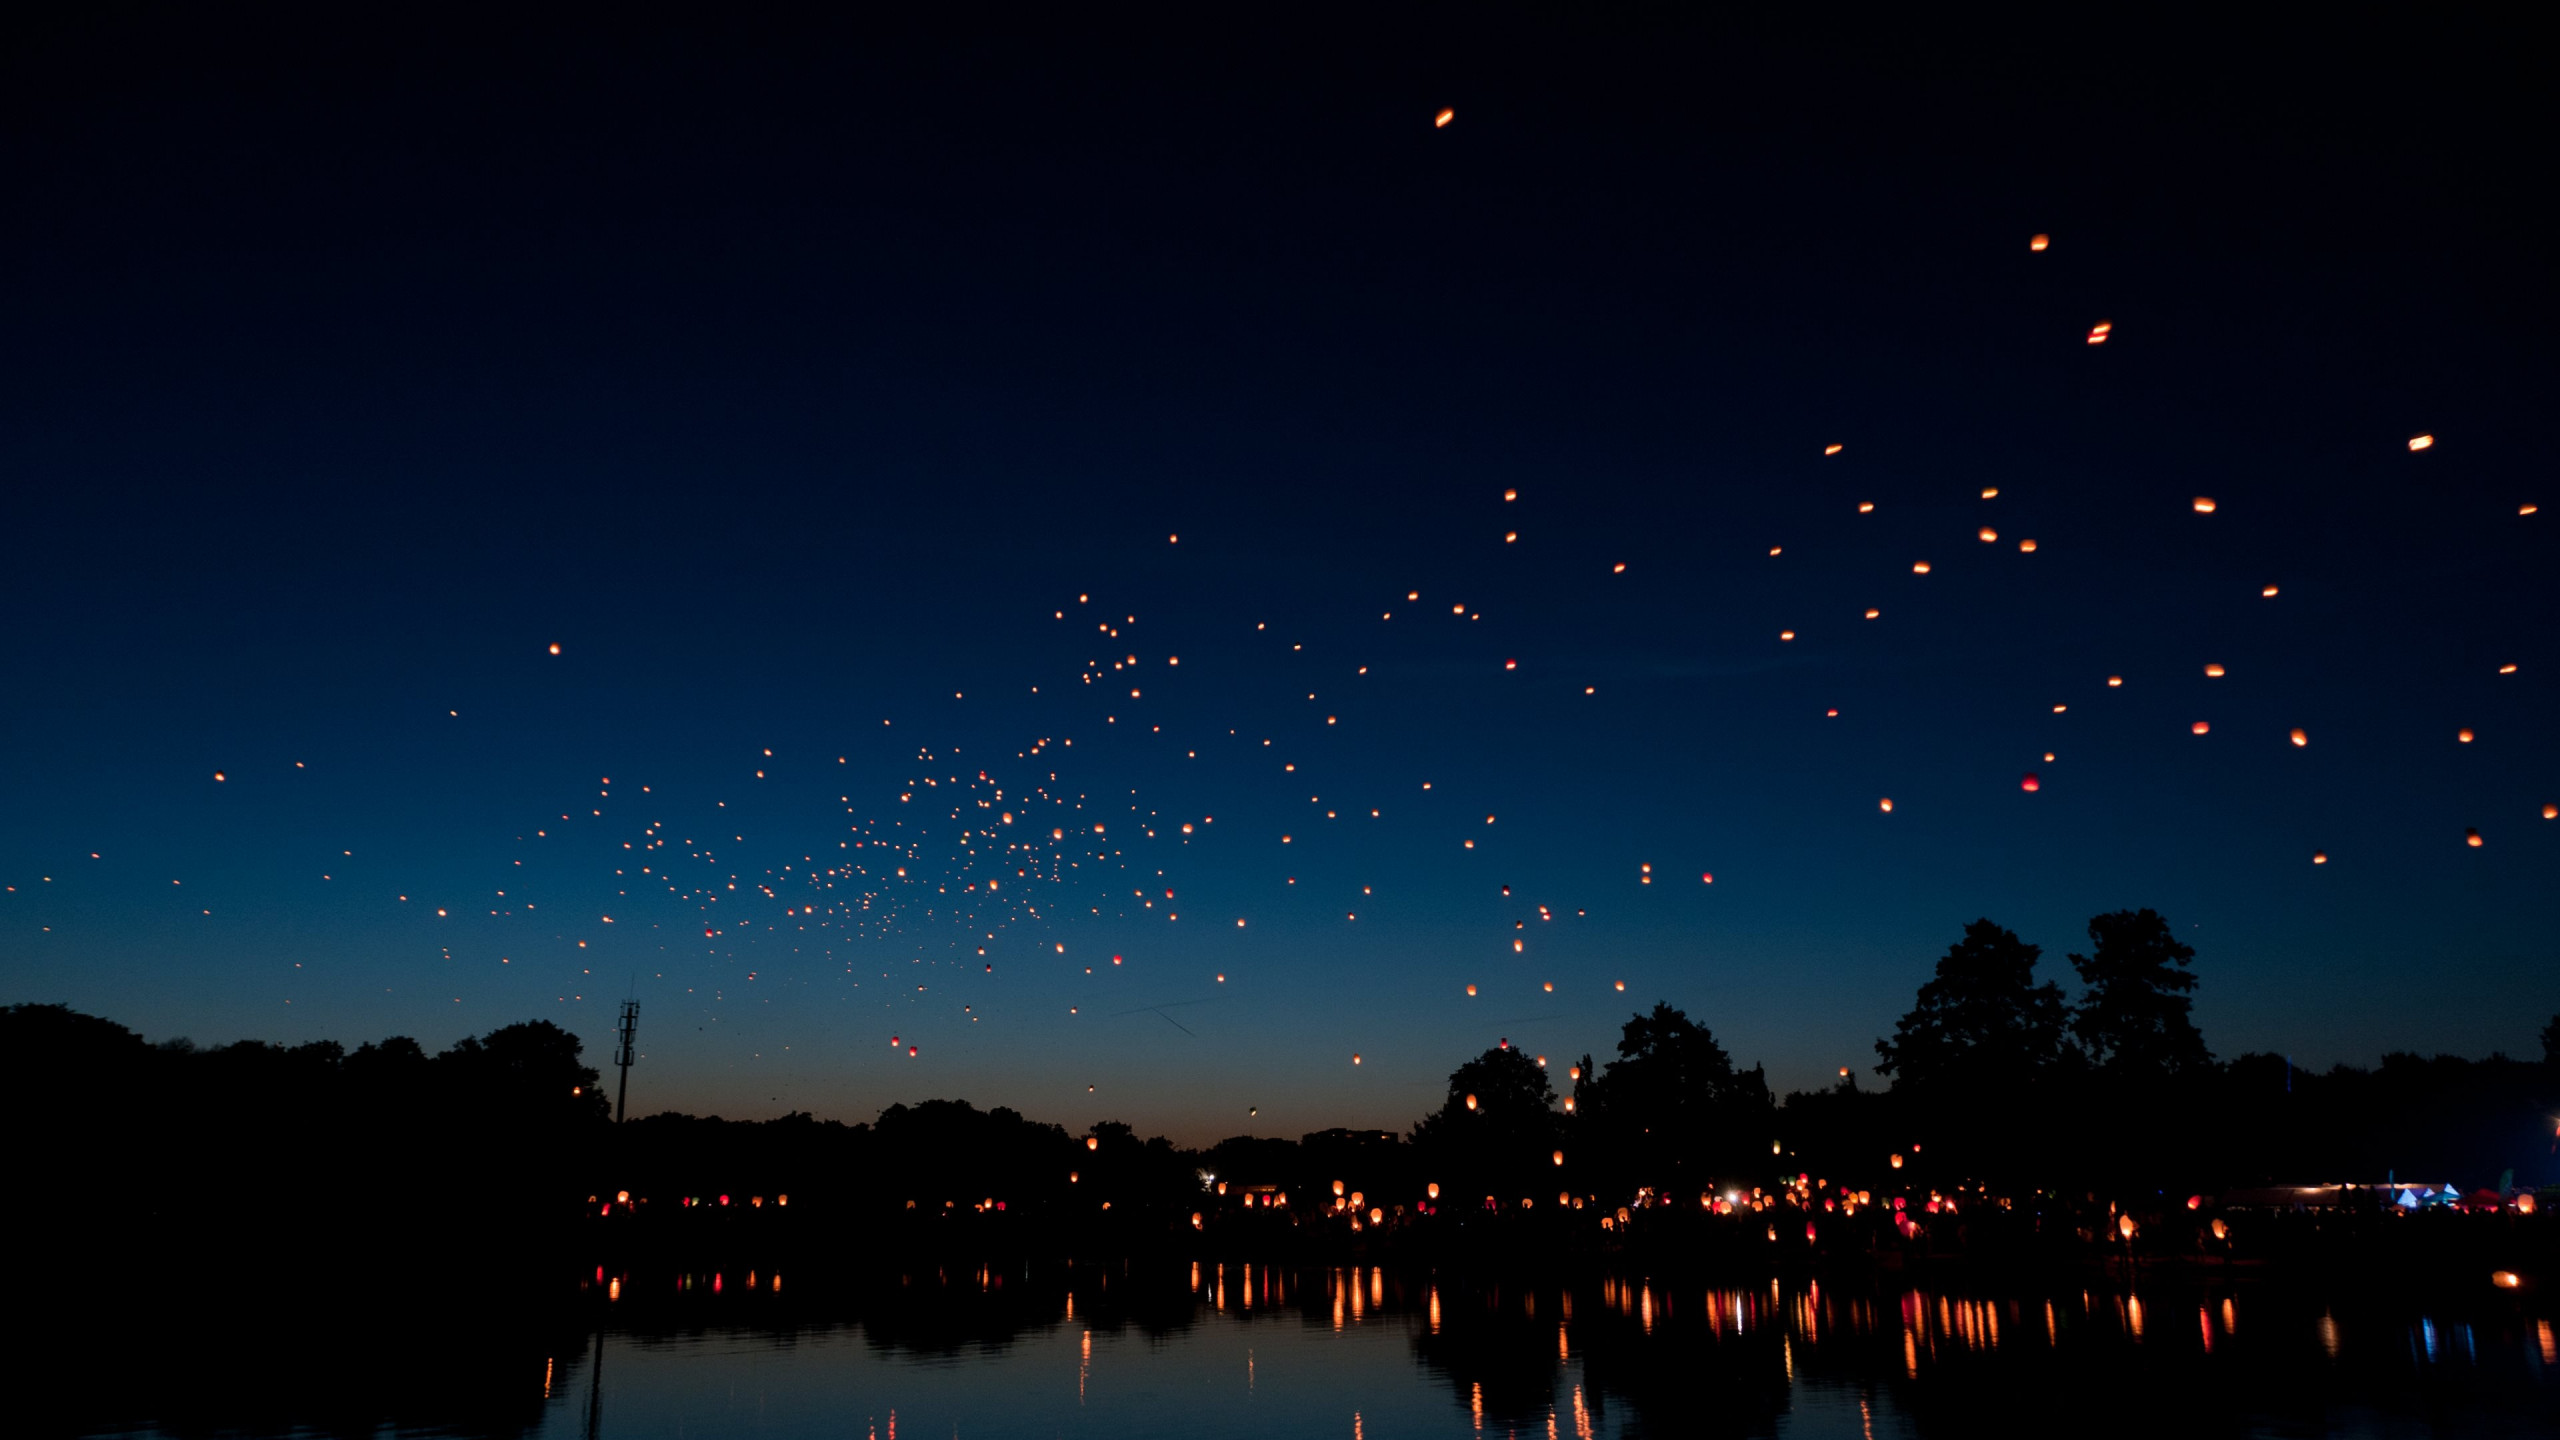 Hot air lanterns | 2560x1440 wallpaper